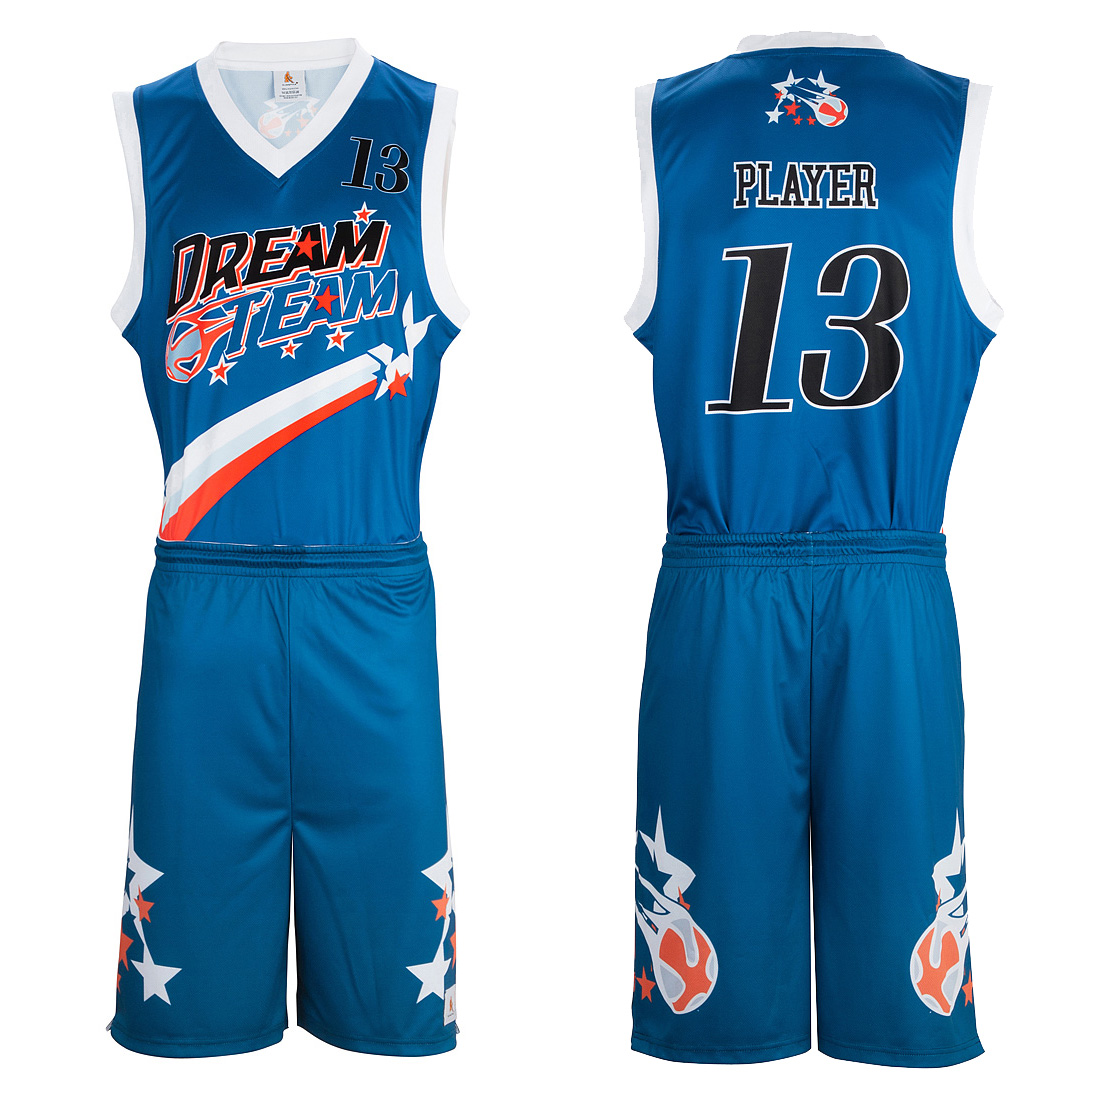 a9ef69293f4 PrevNext. START DESIGNING MY TEAM UNIFORM. The technology of sublimated  printing enables the basketball ...